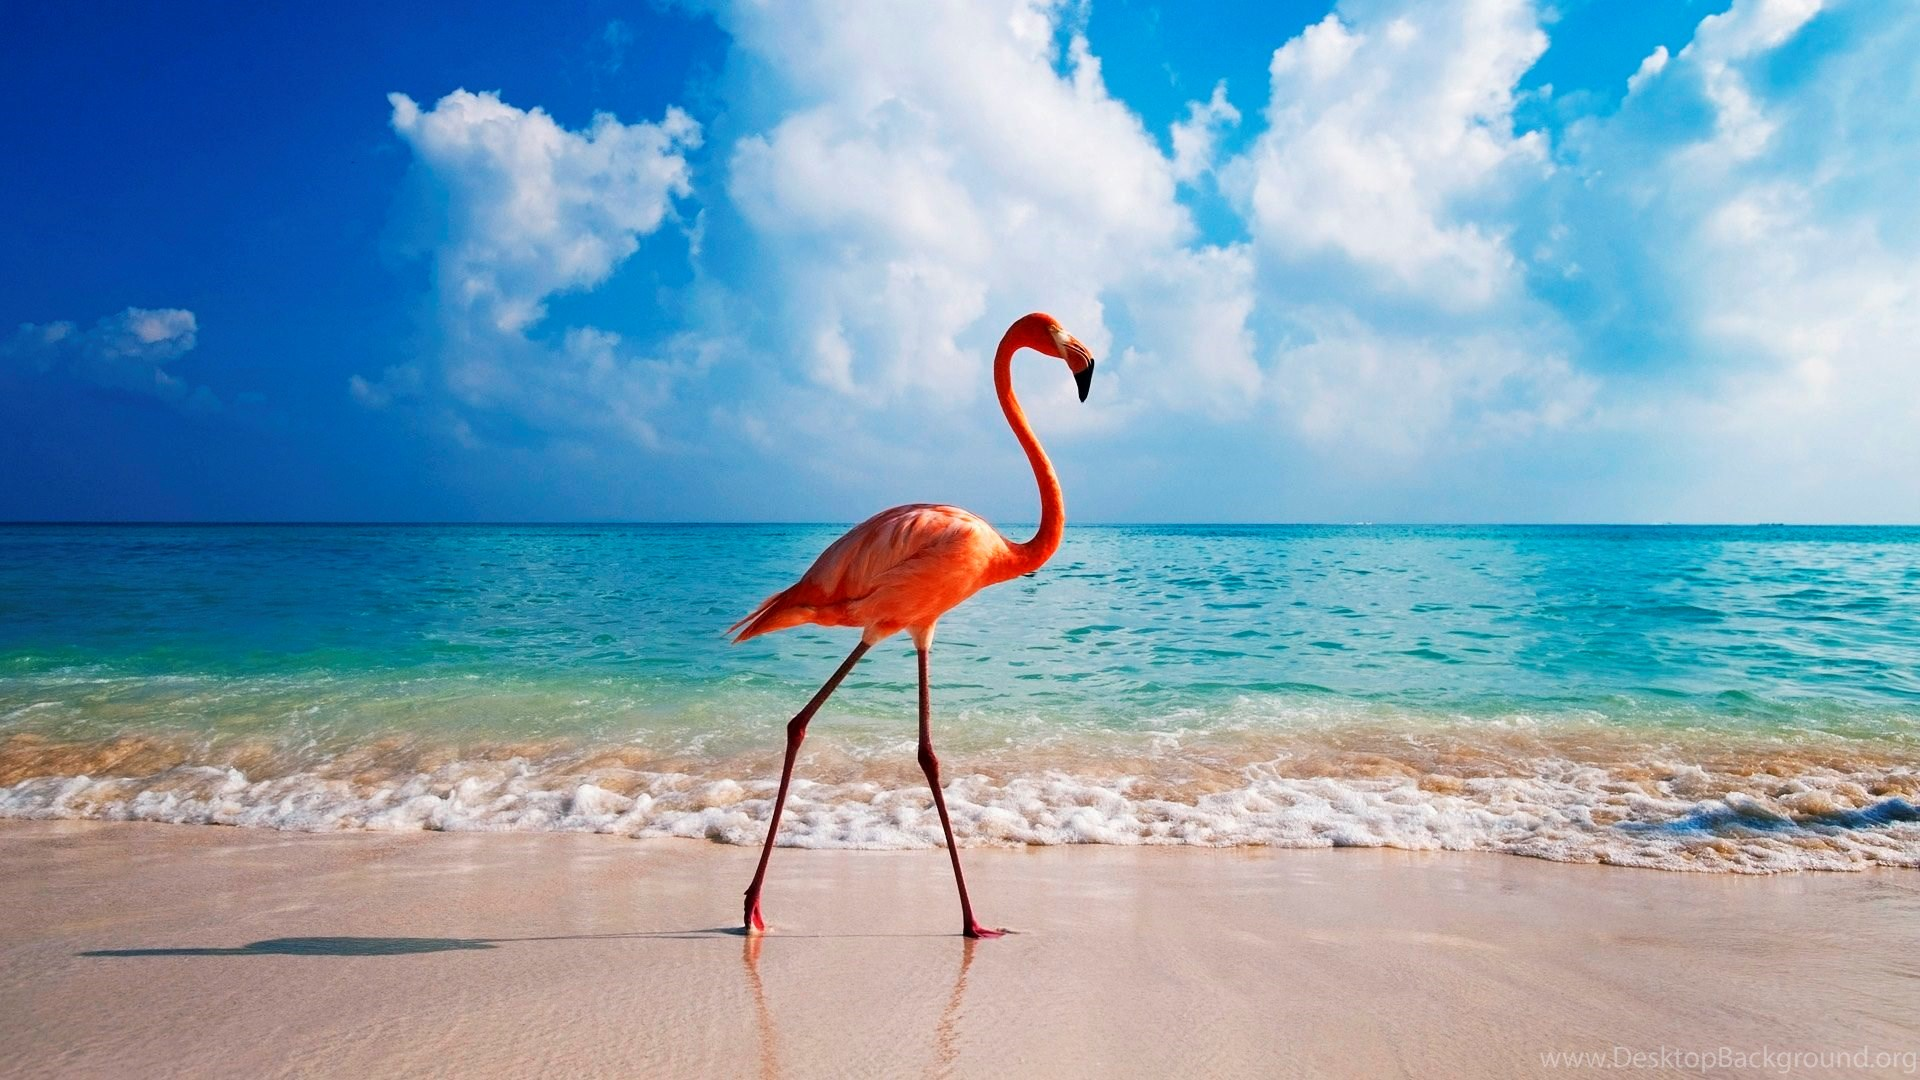 High Quality Flamingo Wallpapers Desktop Background